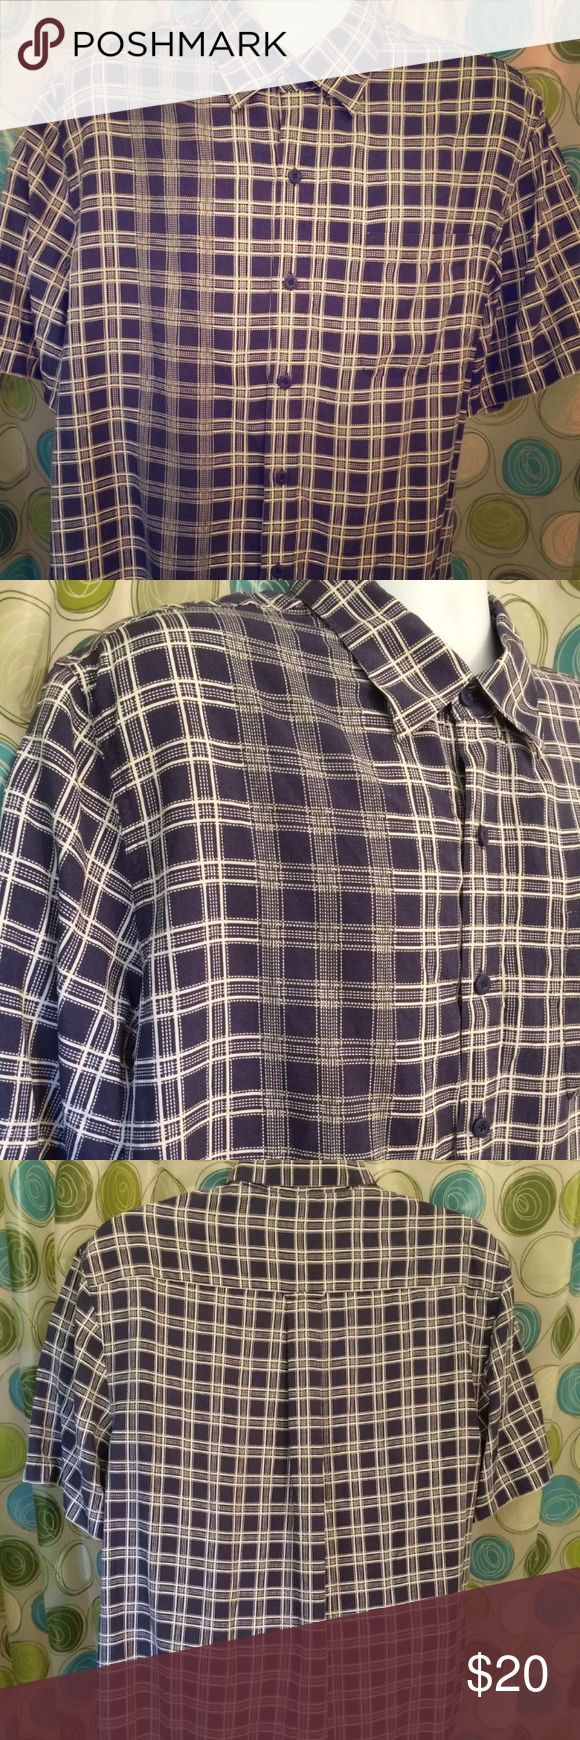 "NAT NAST Silk blend camp shirt plaid large Luxury brand  CHARLES TYRWHITT  Jermyn Street London  In excellent condition  French cuff  Two toned blue plaid  16 1/2  36"" sleeve Nat Nast Shirts Casual Button Down Shirts"